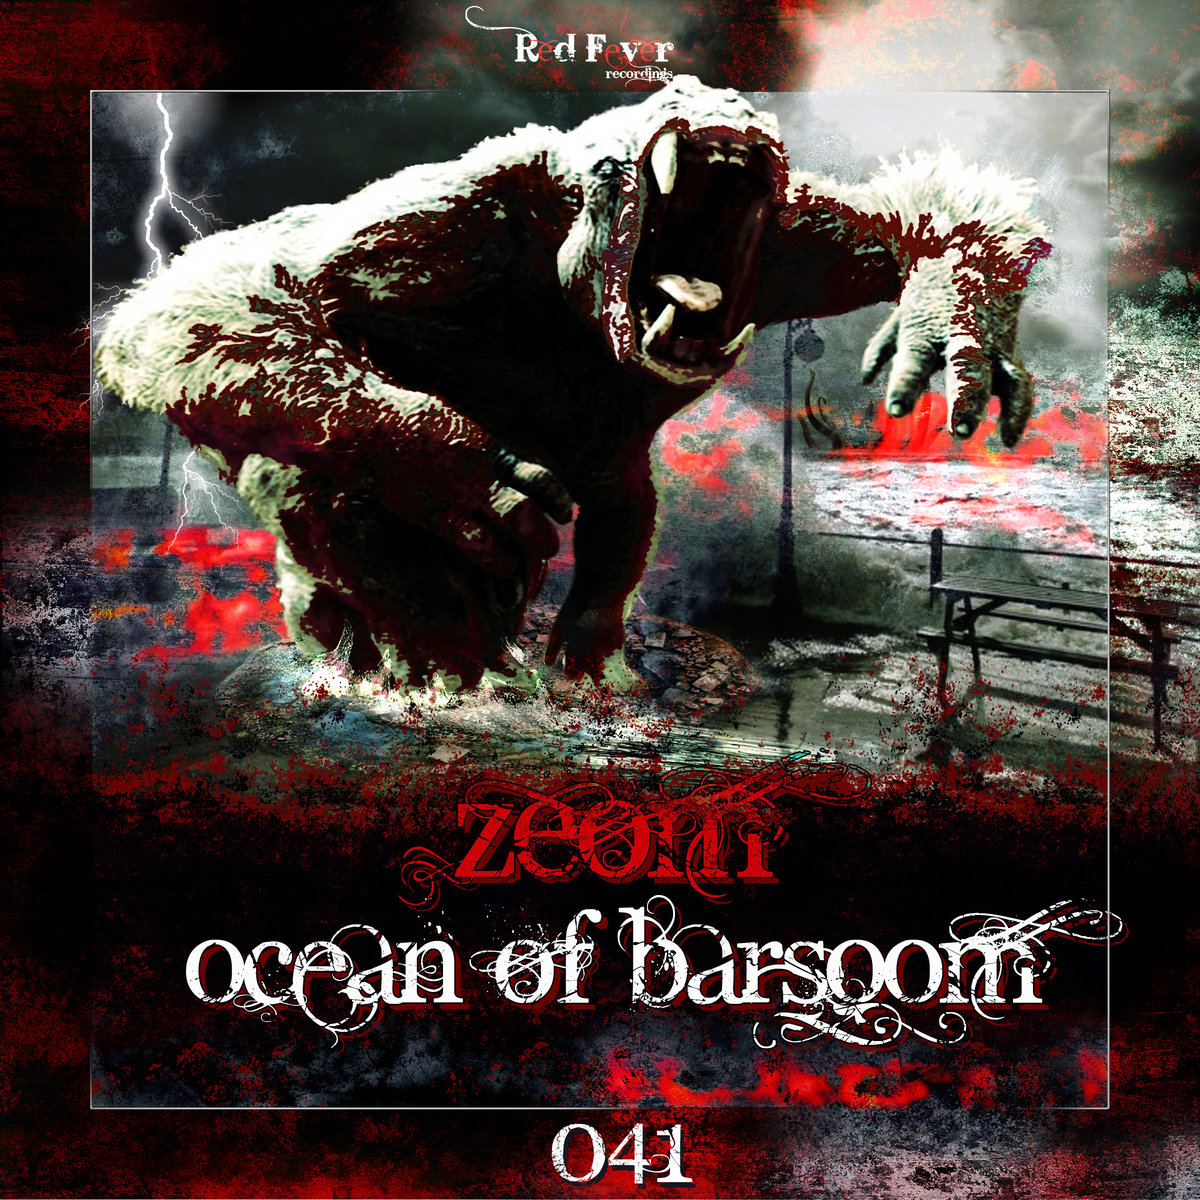 Zeom - Ocean Of Barsoom @ 'Ocean Of Barsoom' album (electronic, gabber)